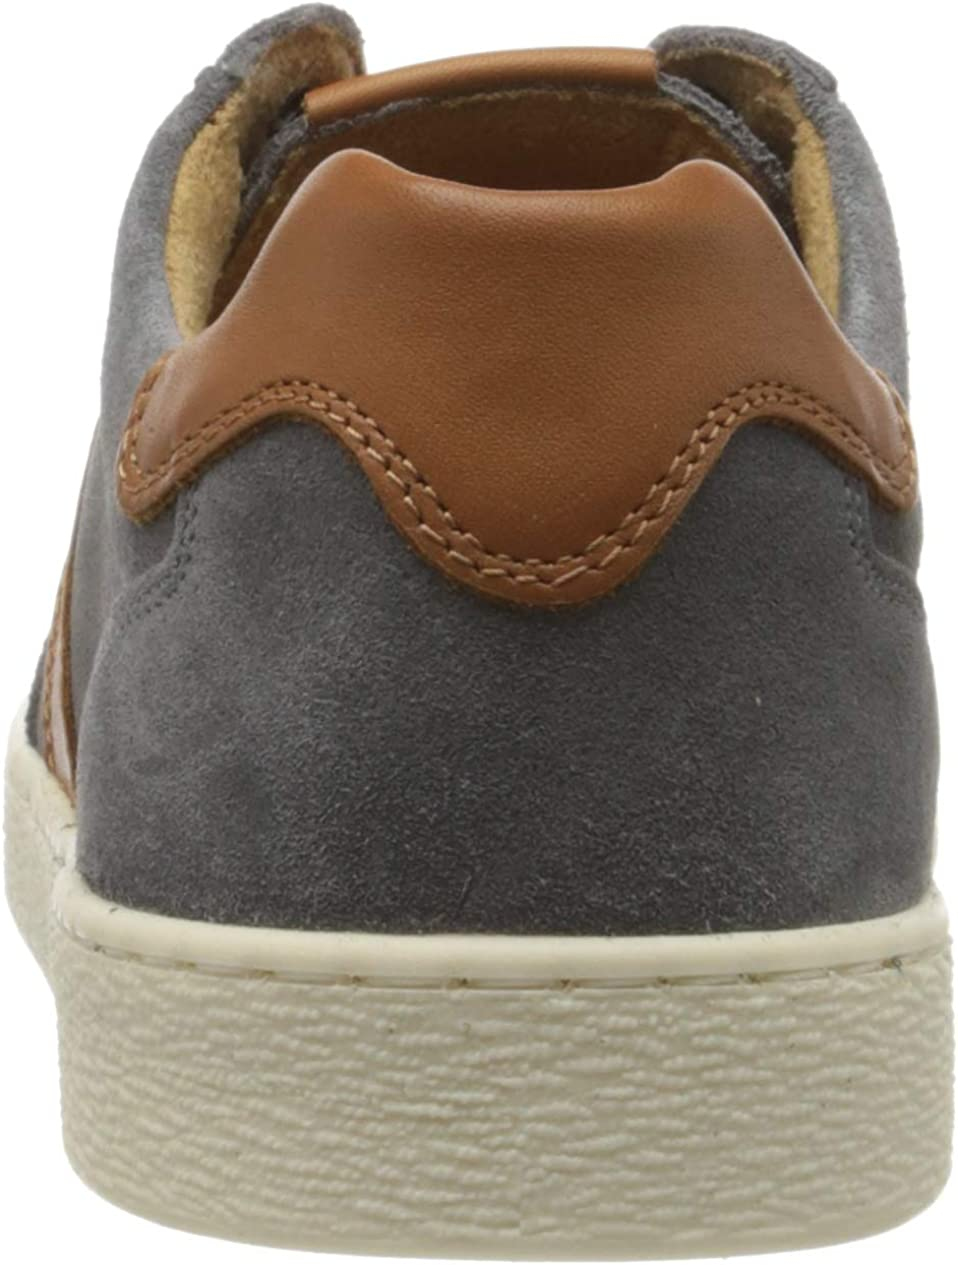 camel active Tonic, Sneakers Basses Homme Multicolore Ash Nature 07